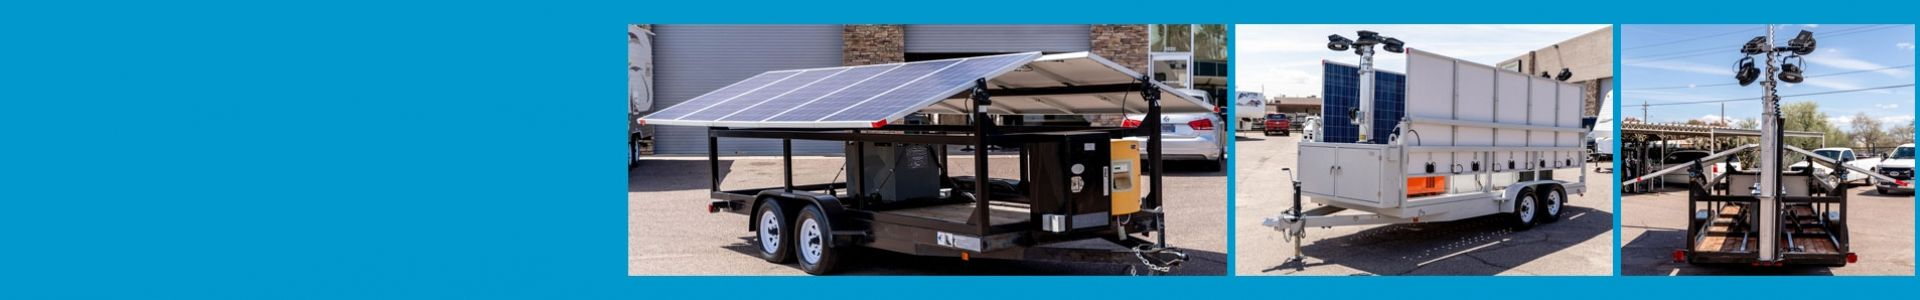 Solar-trailer-hp-slide